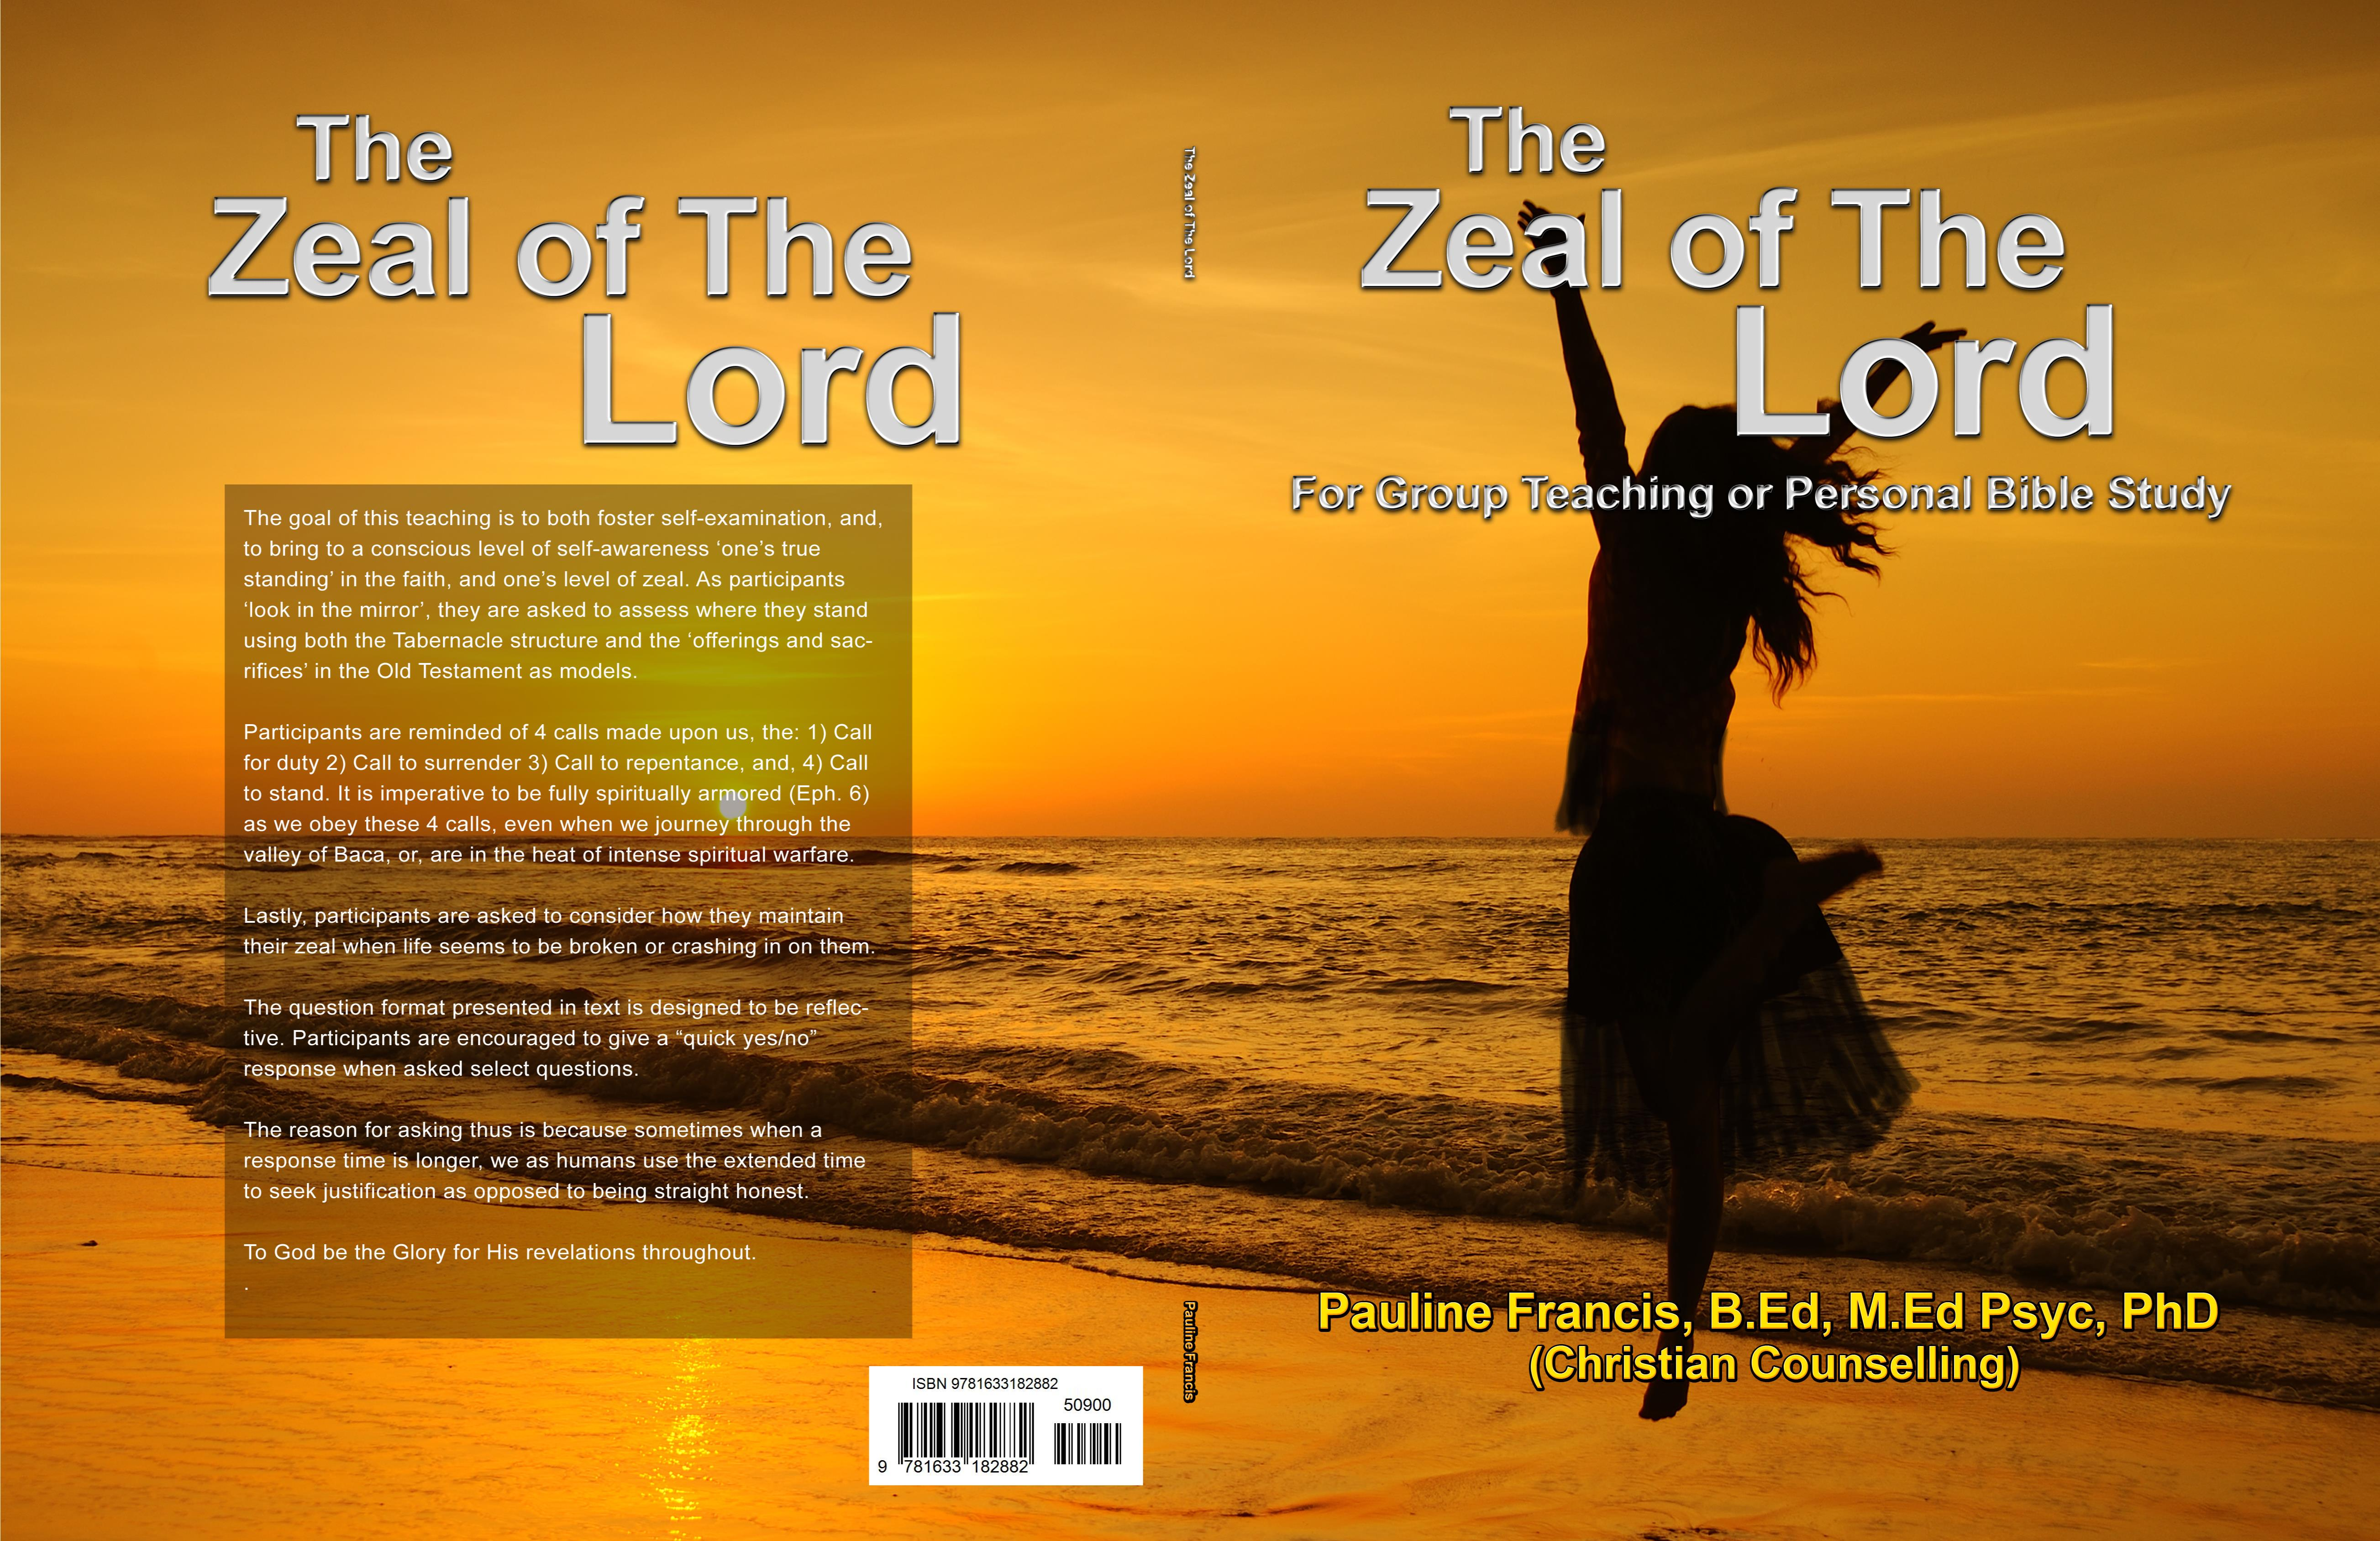 THE ZEAL OF THE LORD cover image